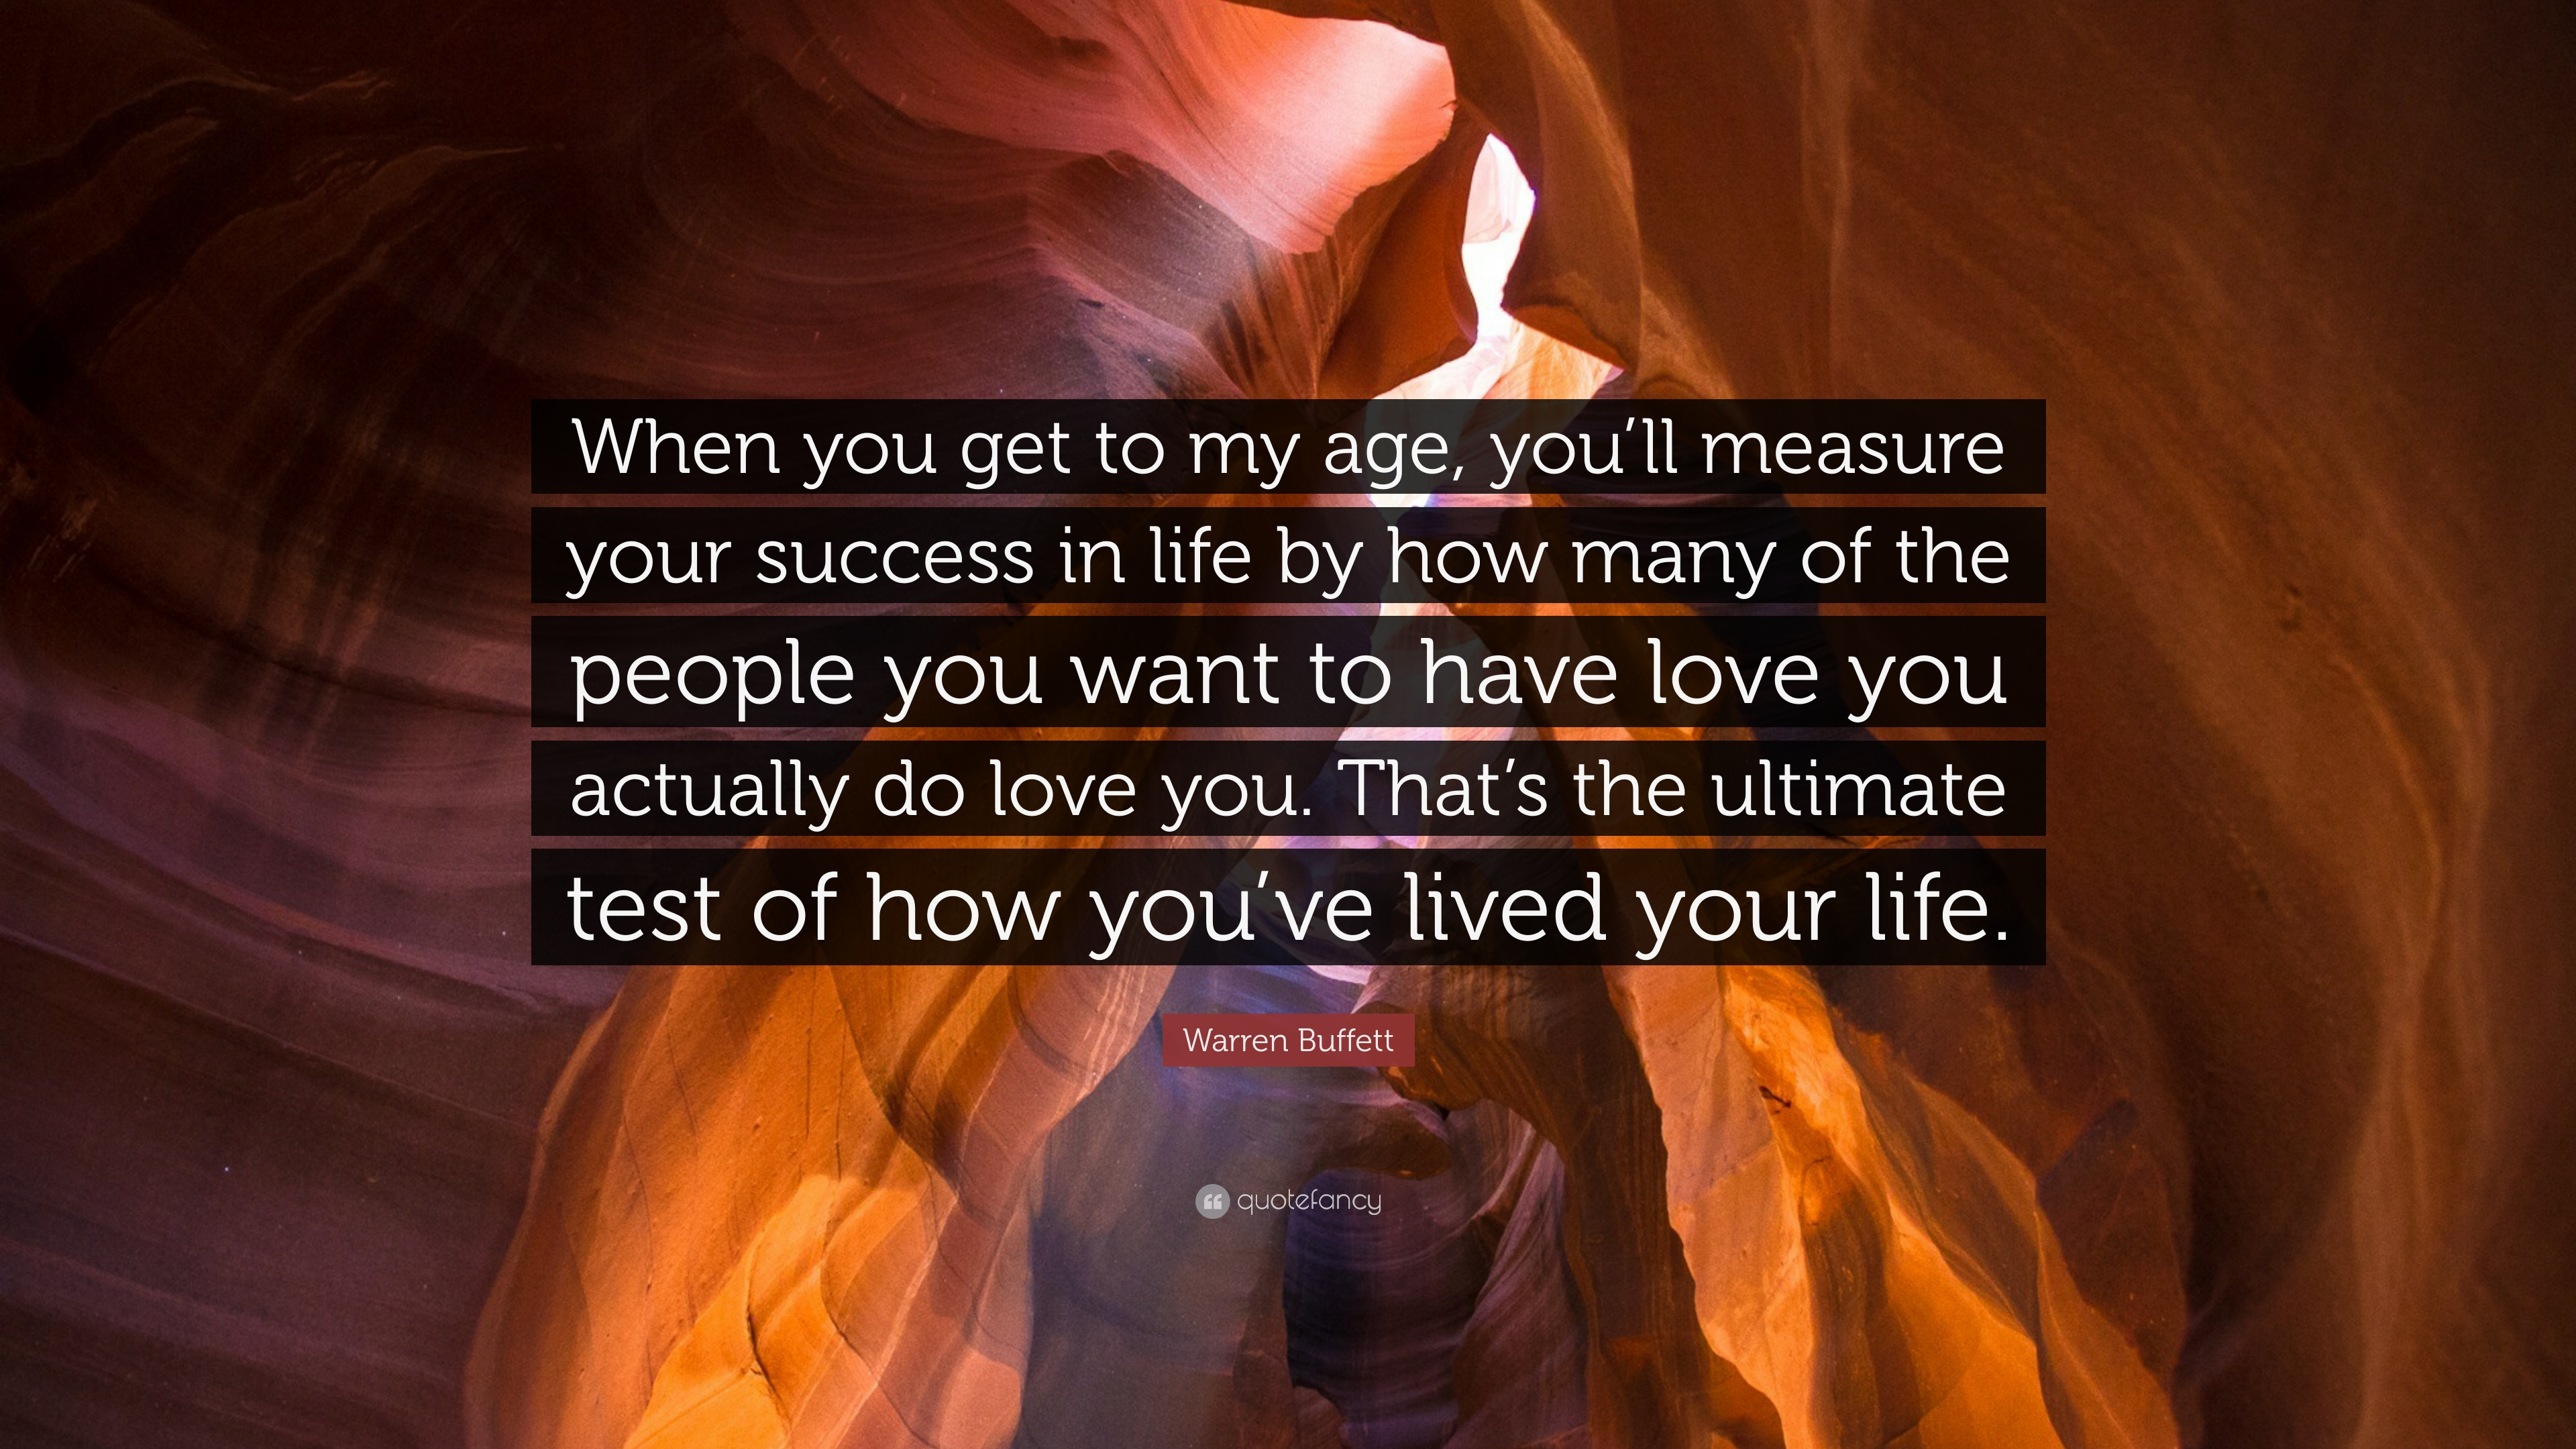 Warren Buffett Quote When You Get To My Age Youll Measure Your